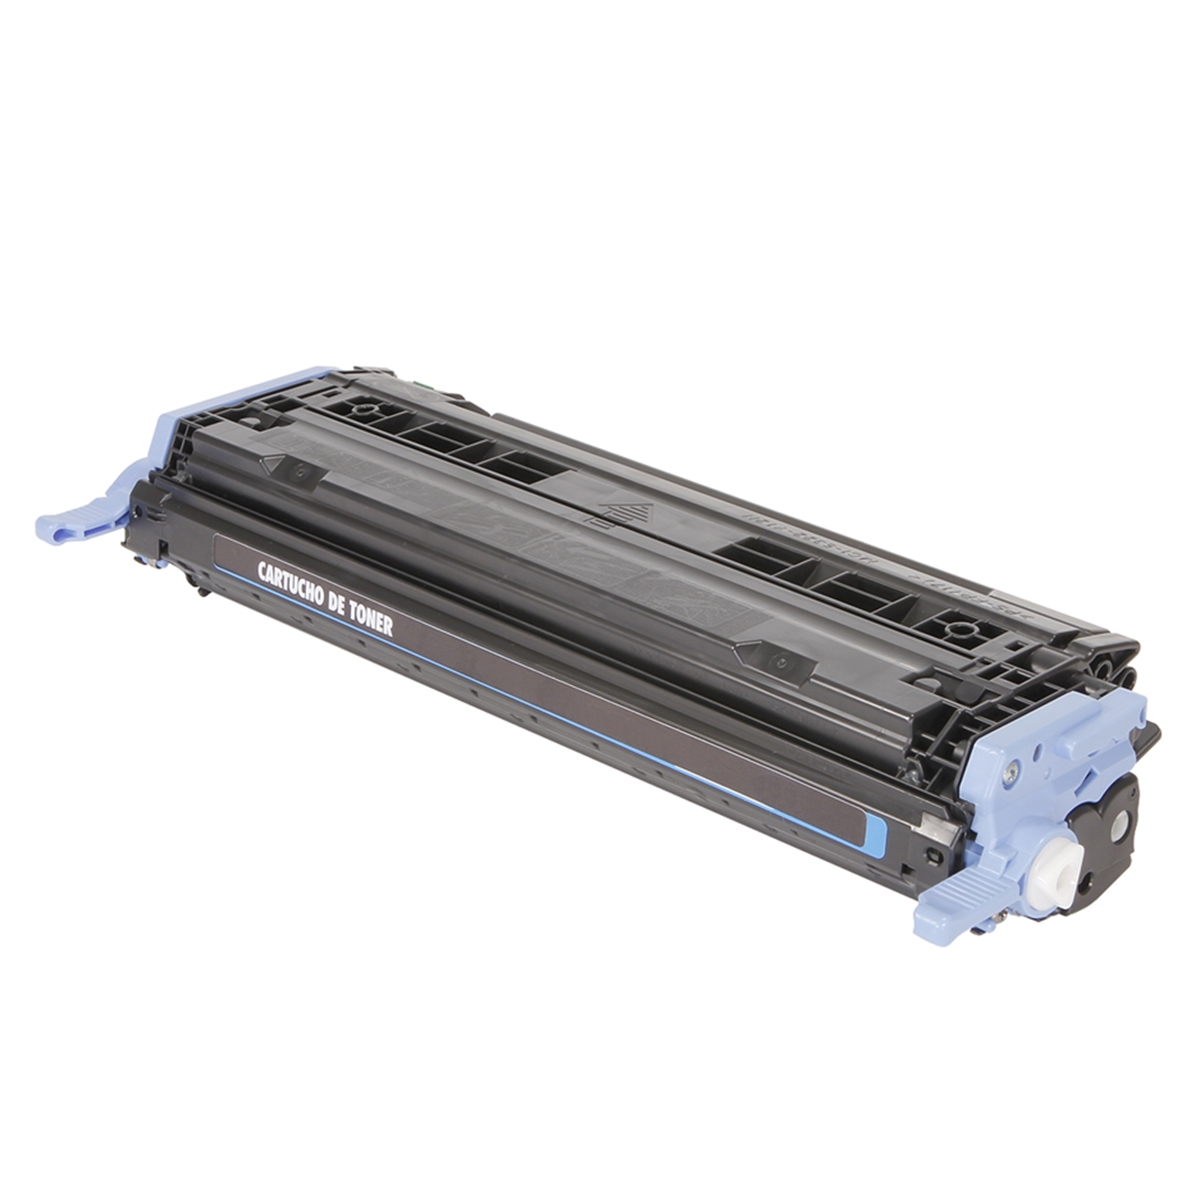 Toner Compativel Hp Q6000 Preto